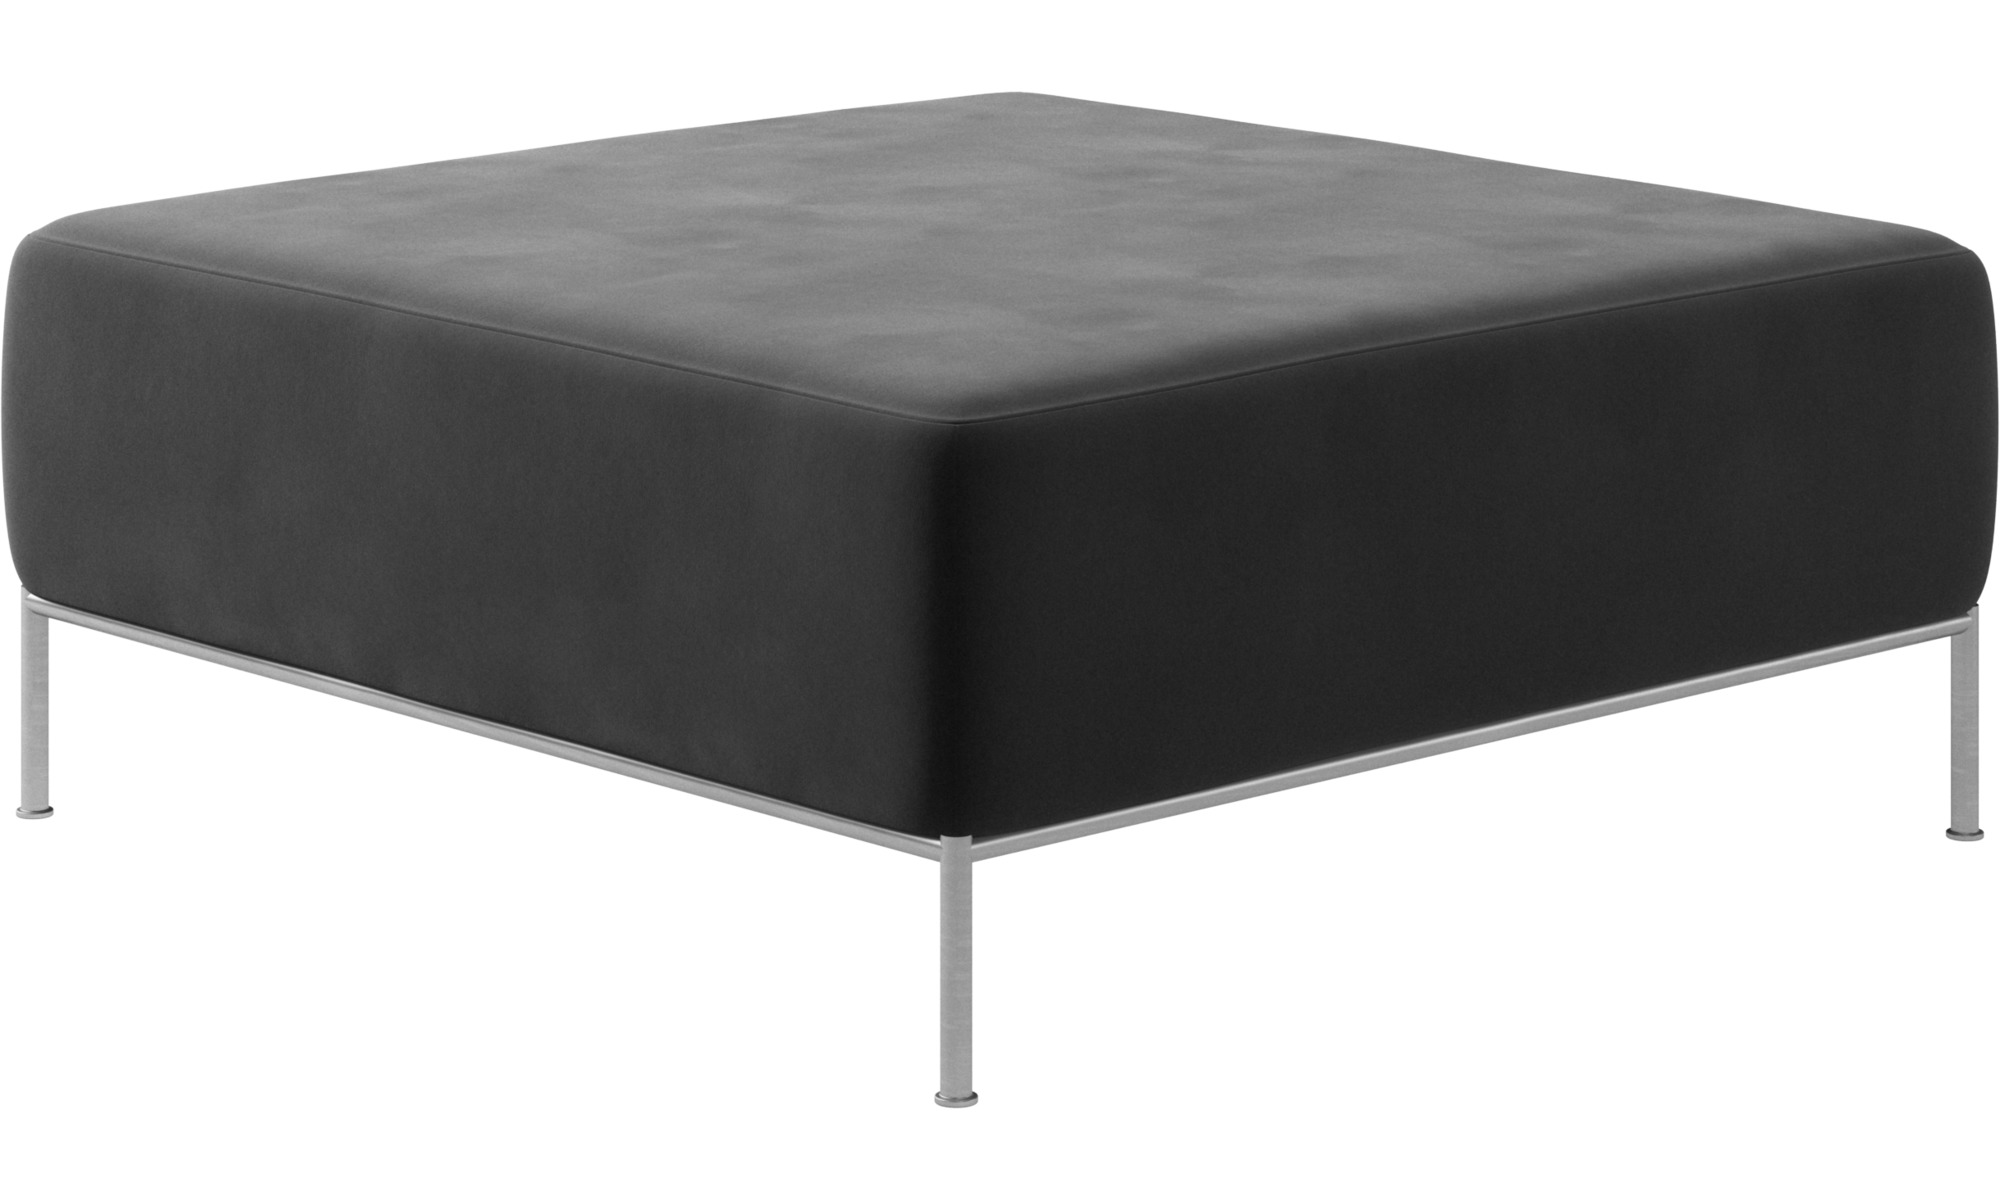 canap s modulaires pouf miami boconcept. Black Bedroom Furniture Sets. Home Design Ideas